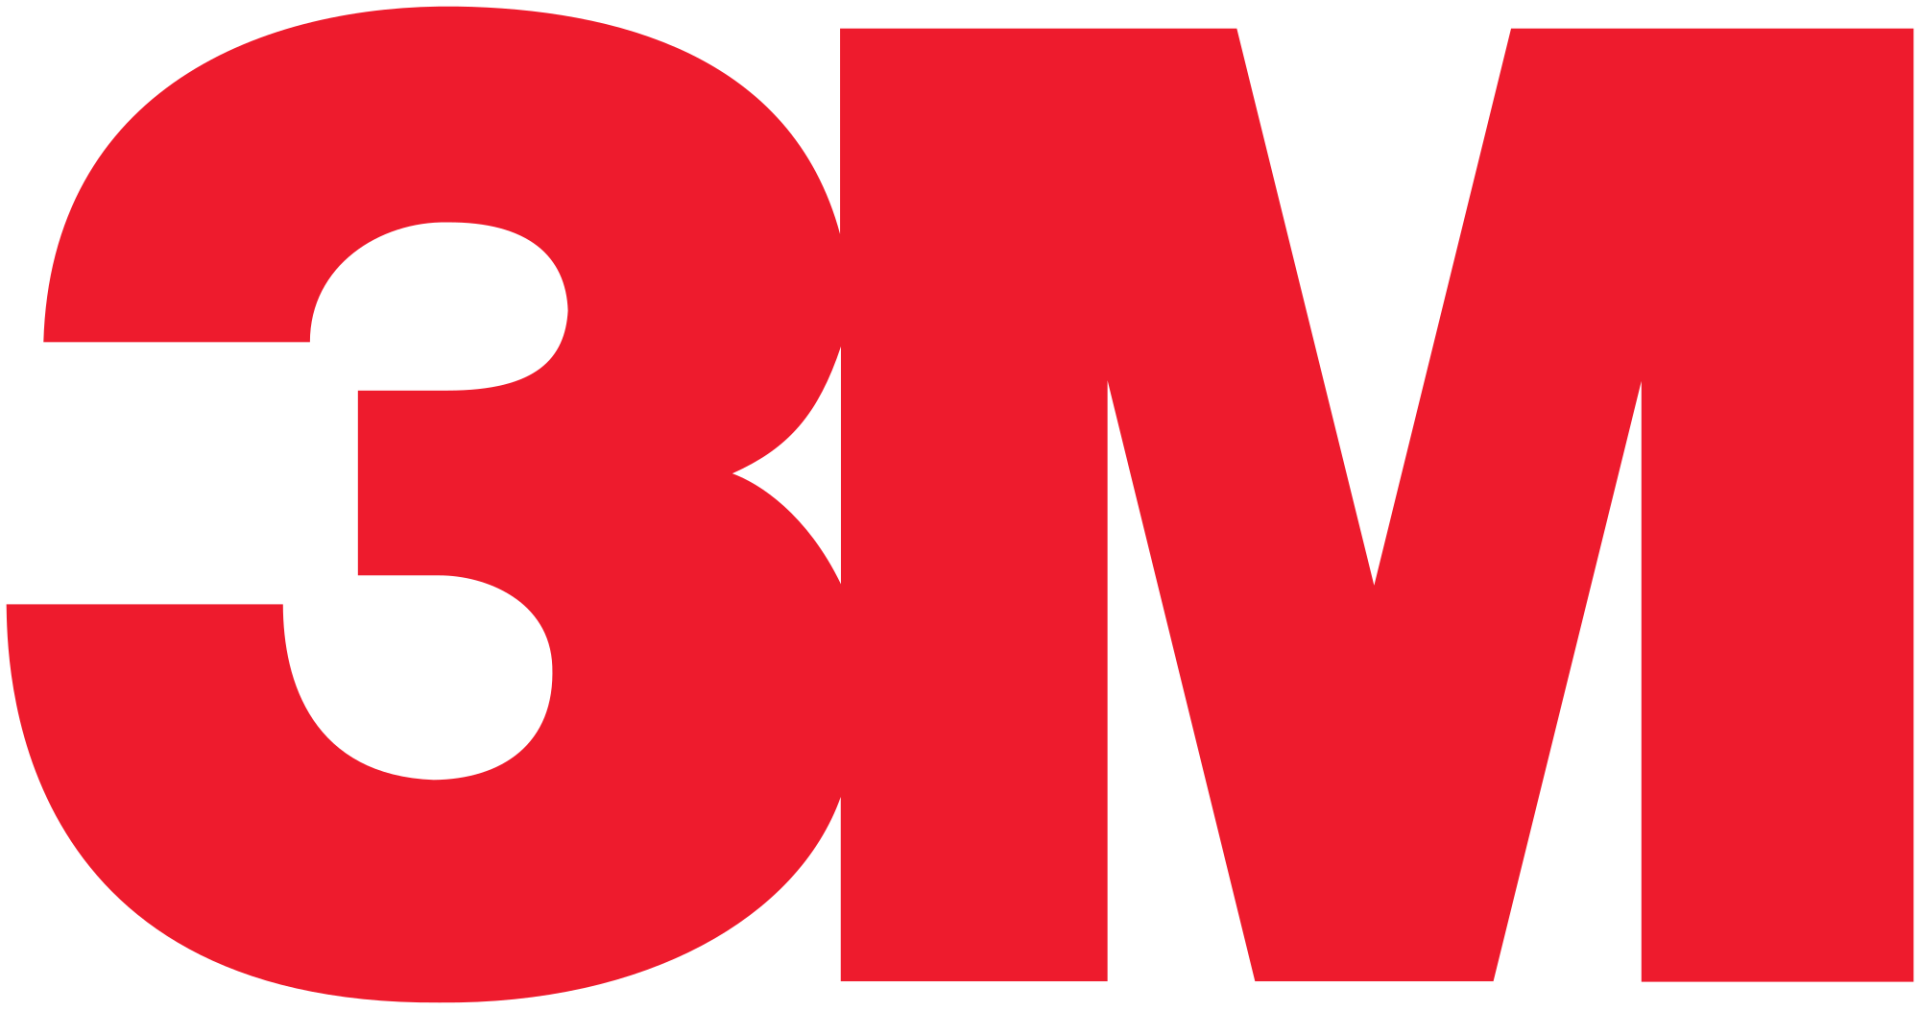 NYSE: MMM | 3M Company Common Stock News, Ratings, and Charts